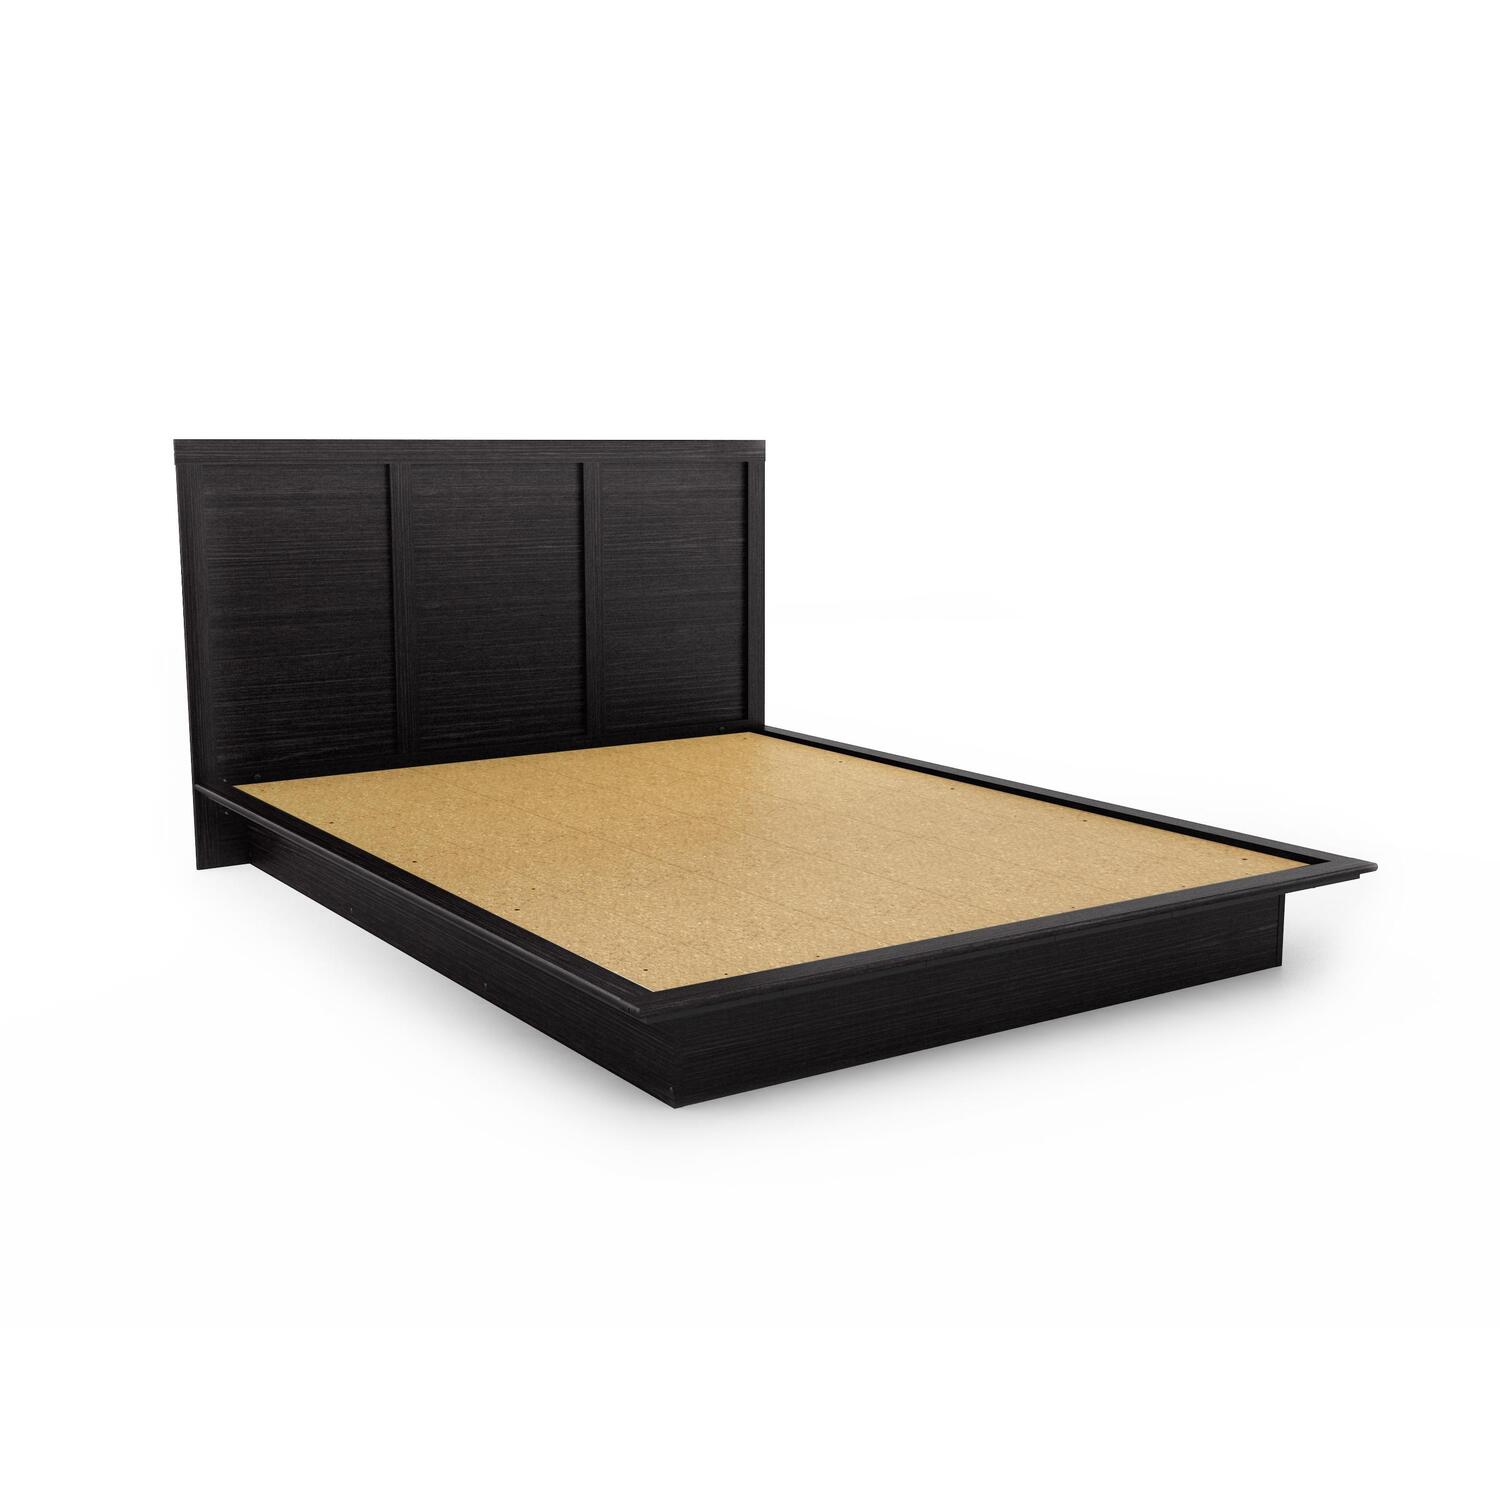 Sonax Plateau Queen Platform Bed in Ravenwood Black by OJ